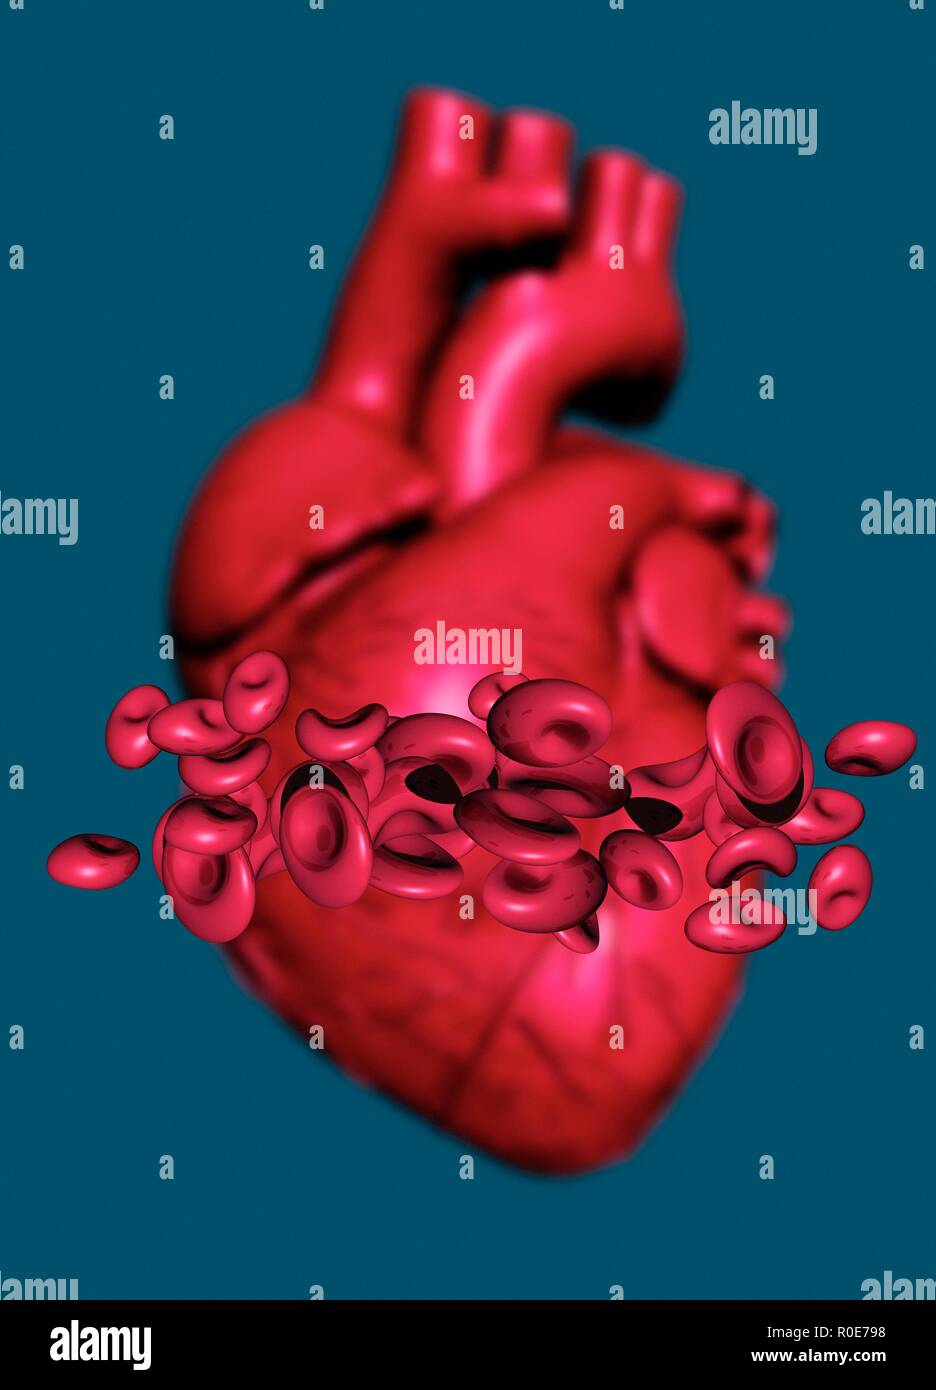 Human heart and red blood cells, illustration. - Stock Image